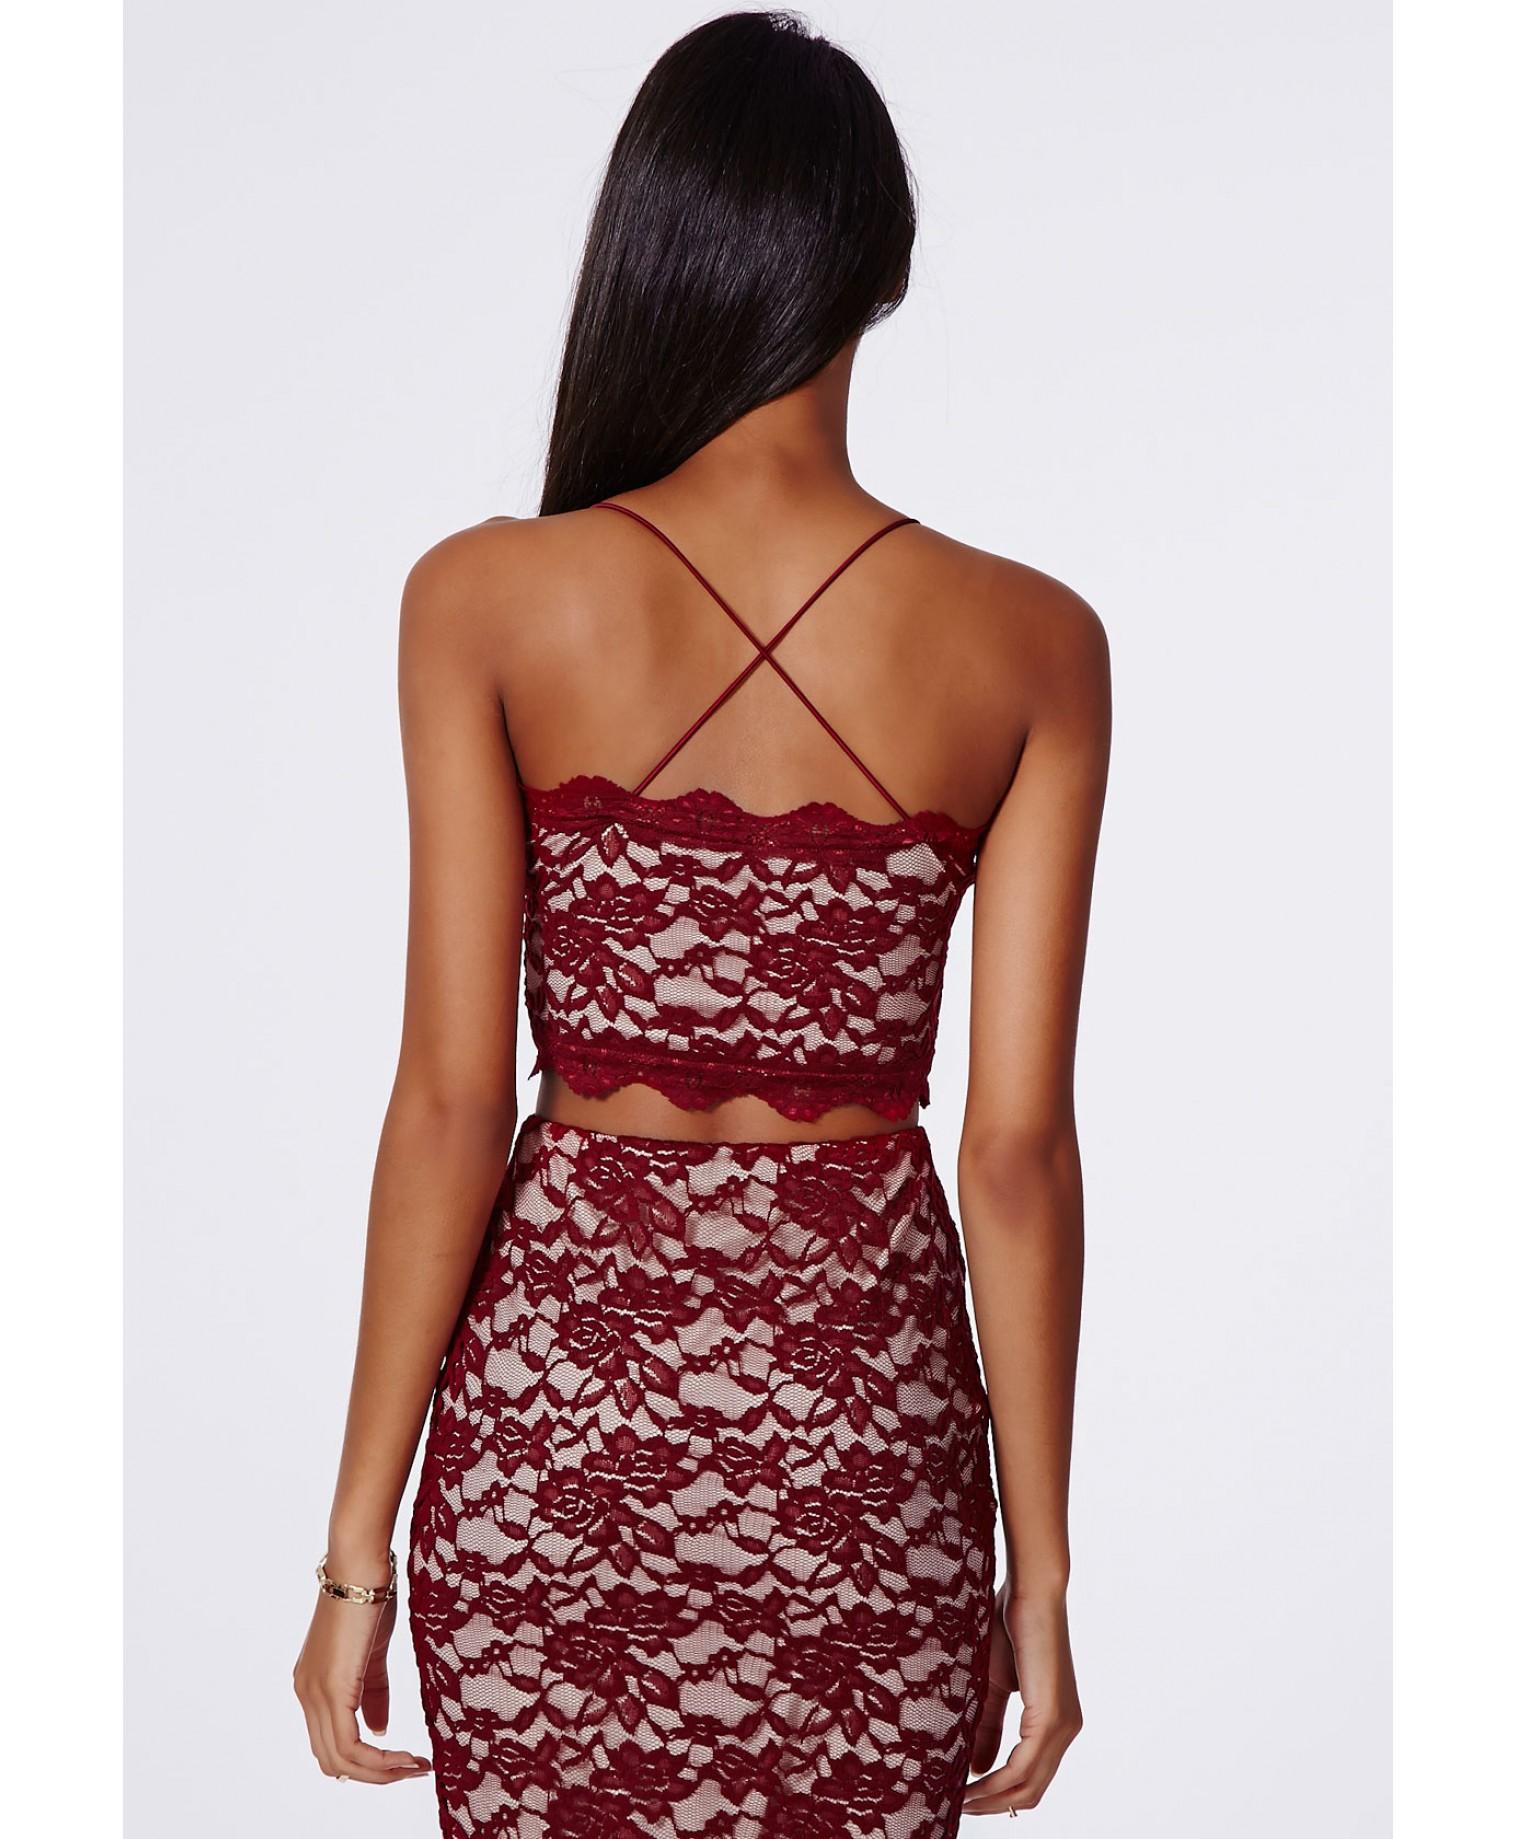 Missguided - Beatie Cross Back Strappy Lace Bralet Oxblood